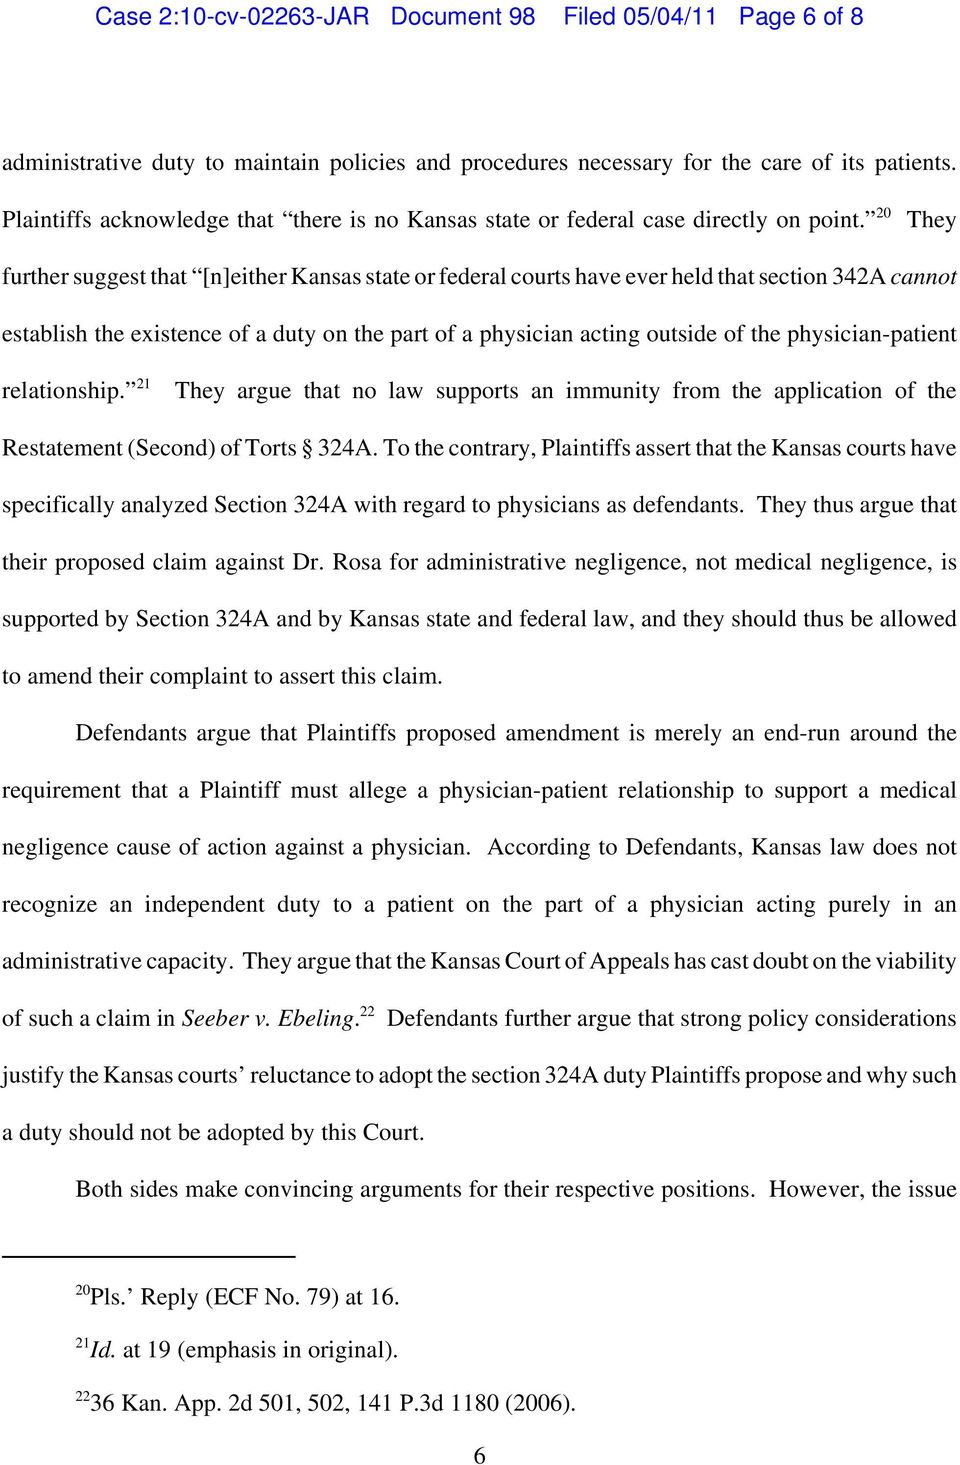 20 They further suggest that [n]either Kansas state or federal courts have ever held that section 342A cannot establish the existence of a duty on the part of a physician acting outside of the